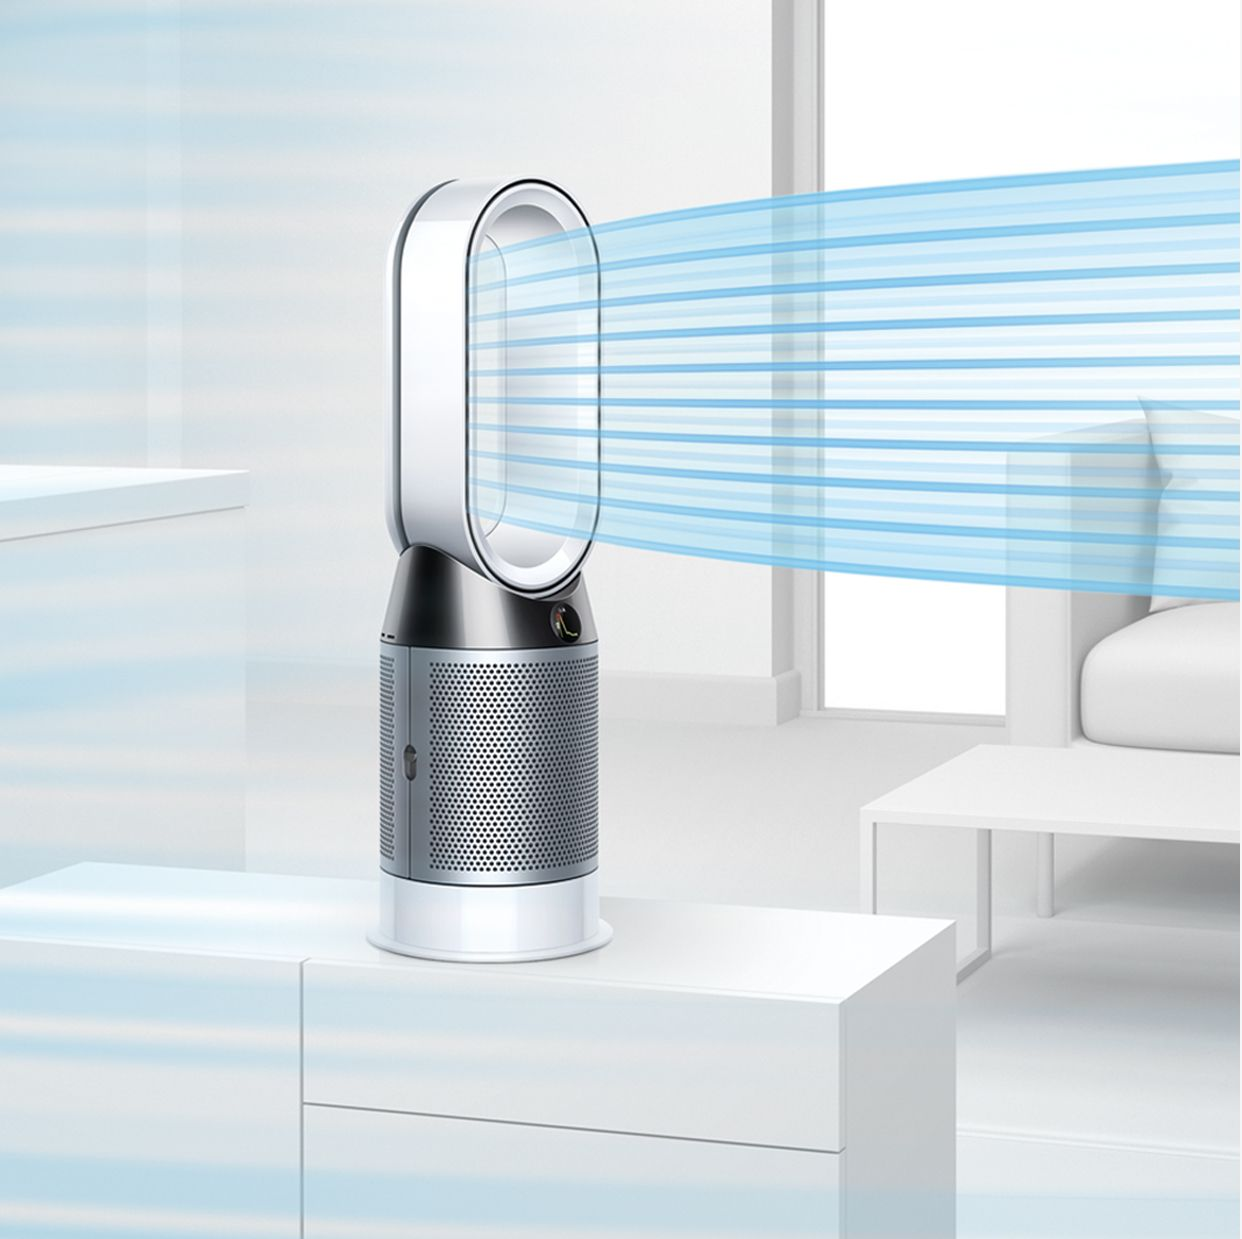 Dyson air treatment